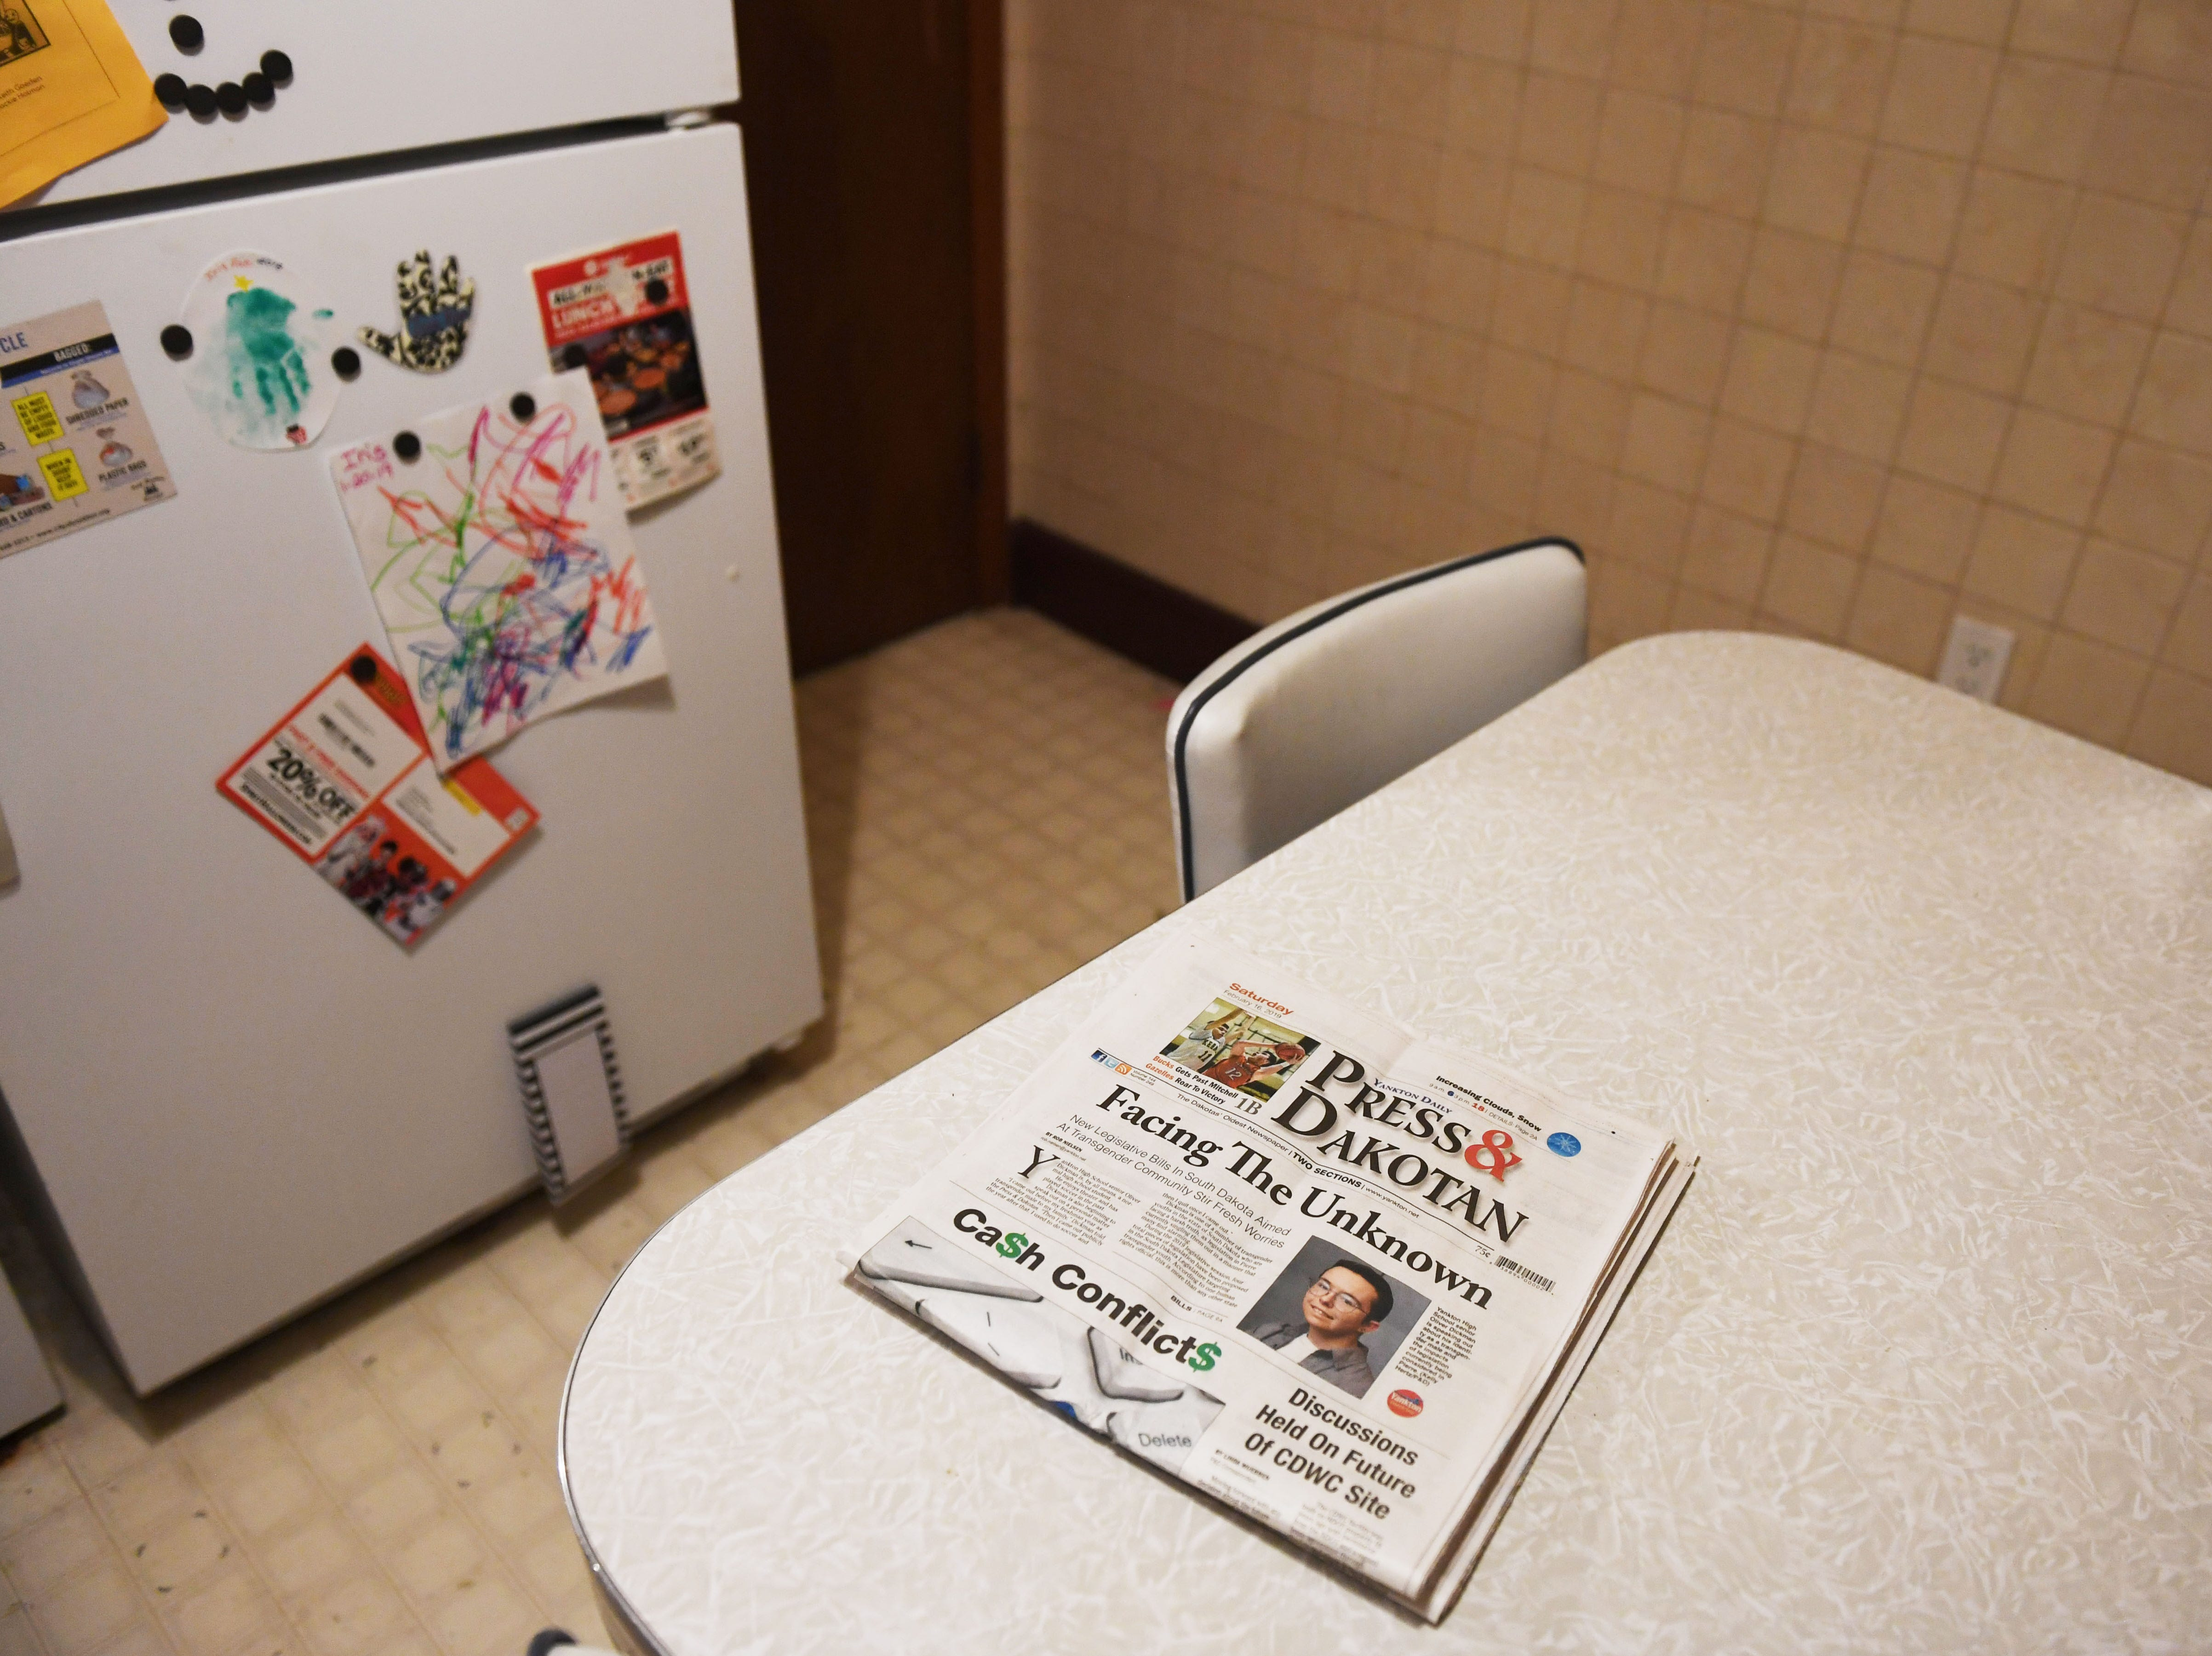 Oliver Dickman has a copy of the Yankton Daily Press & Dakotan, which did a story on Dickman being transgender.